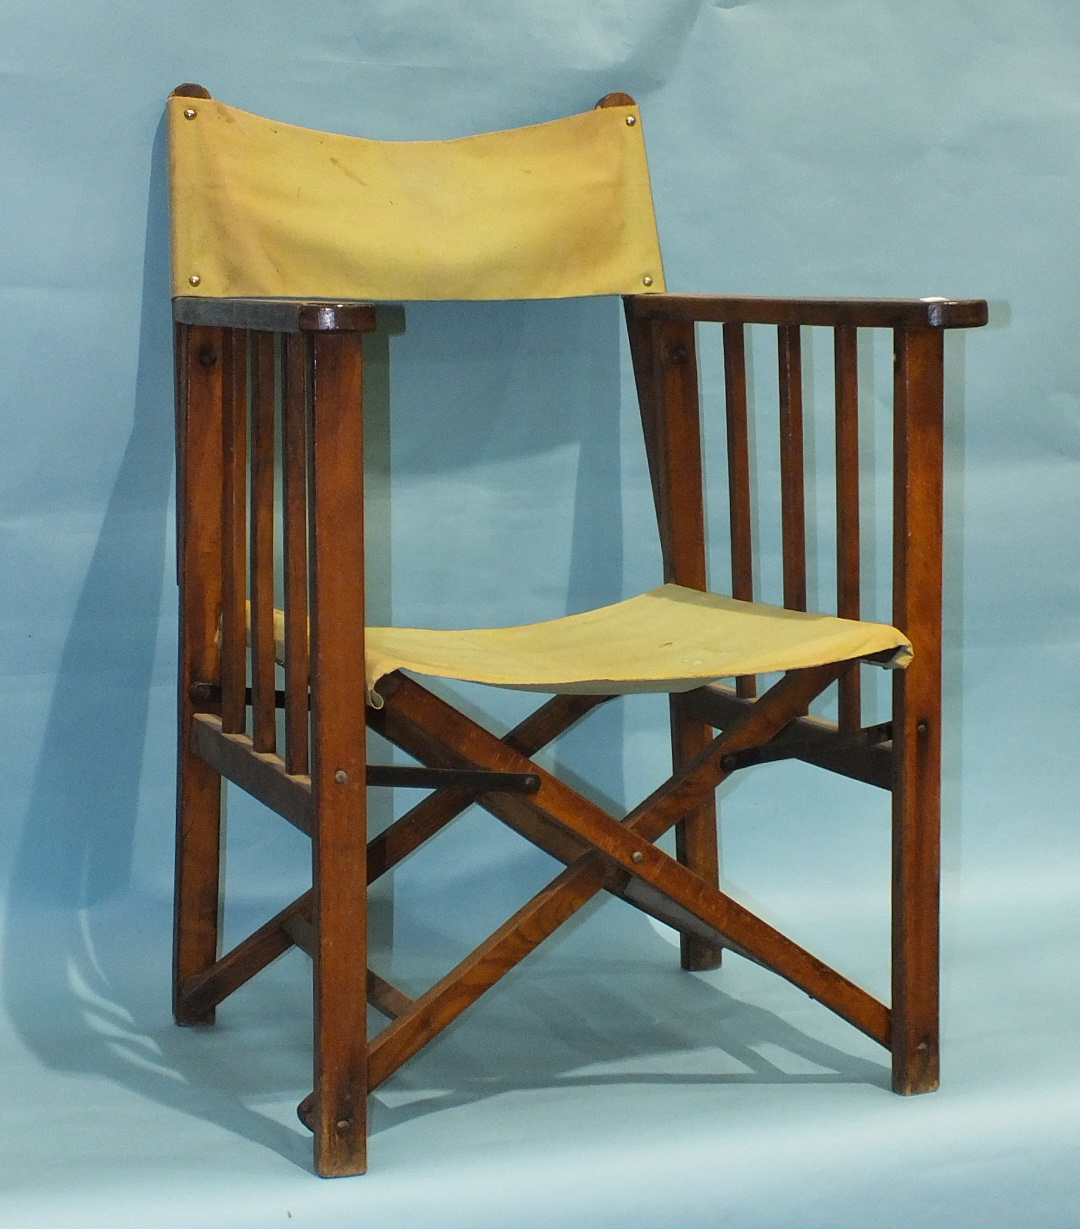 A vintage stained wood folding deck chair/pilot's chair with canvas back and seat. (Belonged to a